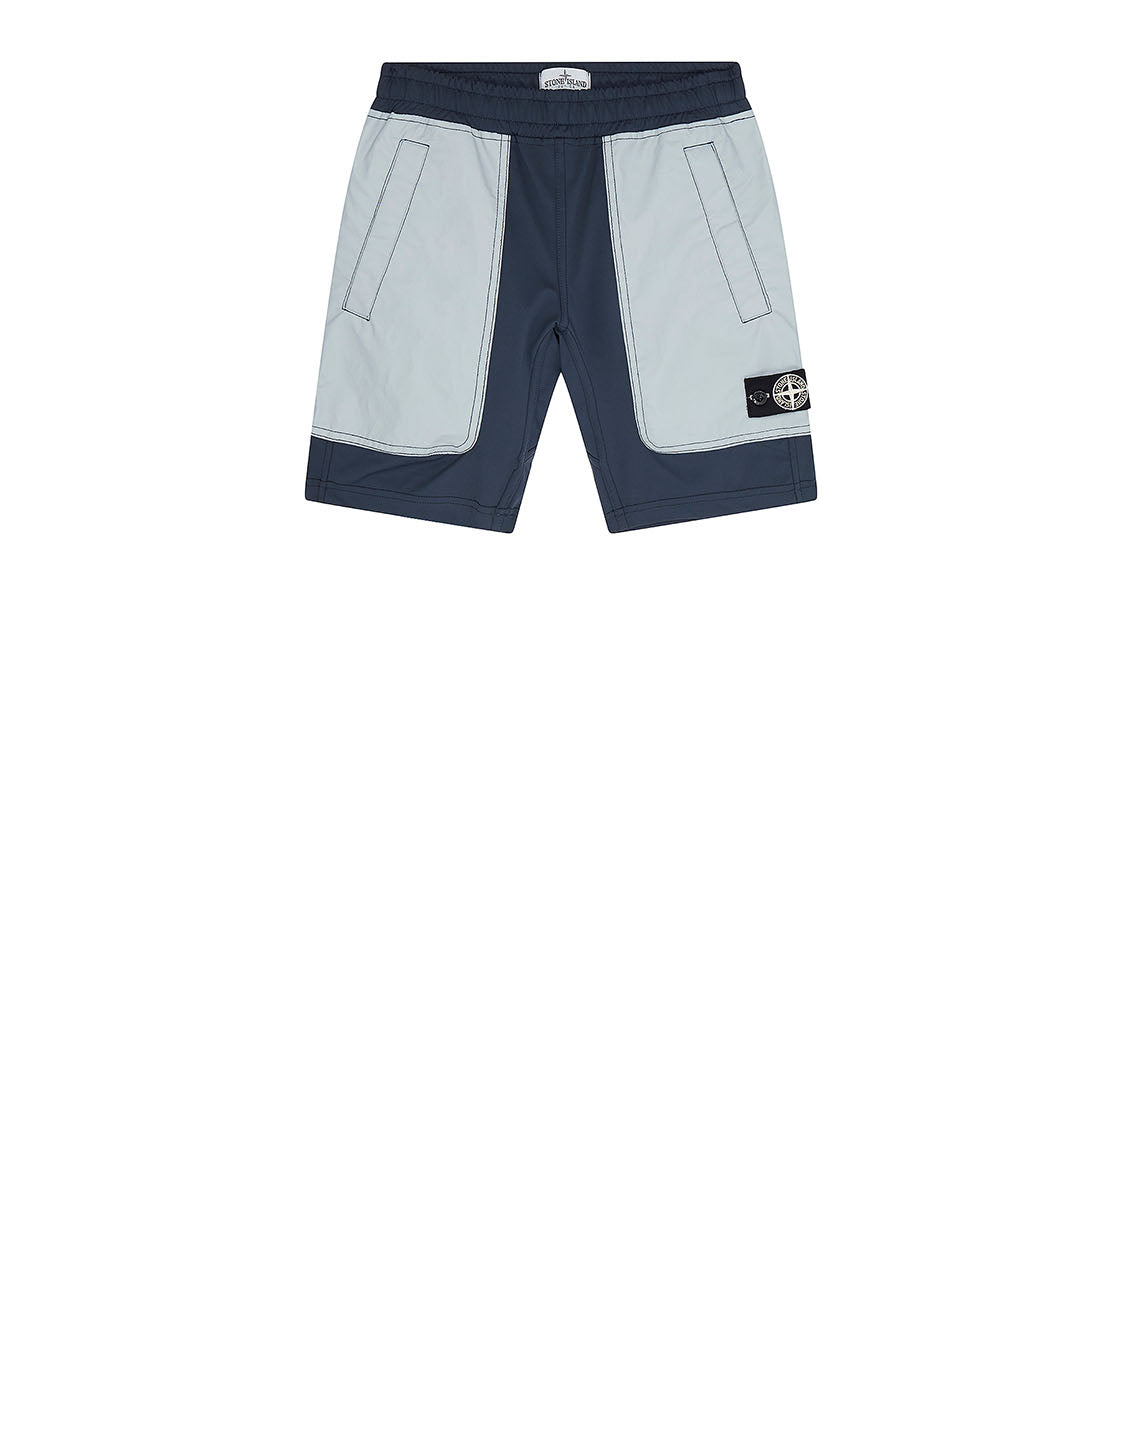 L0836 GARMENT DYED PLATED REFLECTIVE BERMUDA SHORTS in Navy Blue